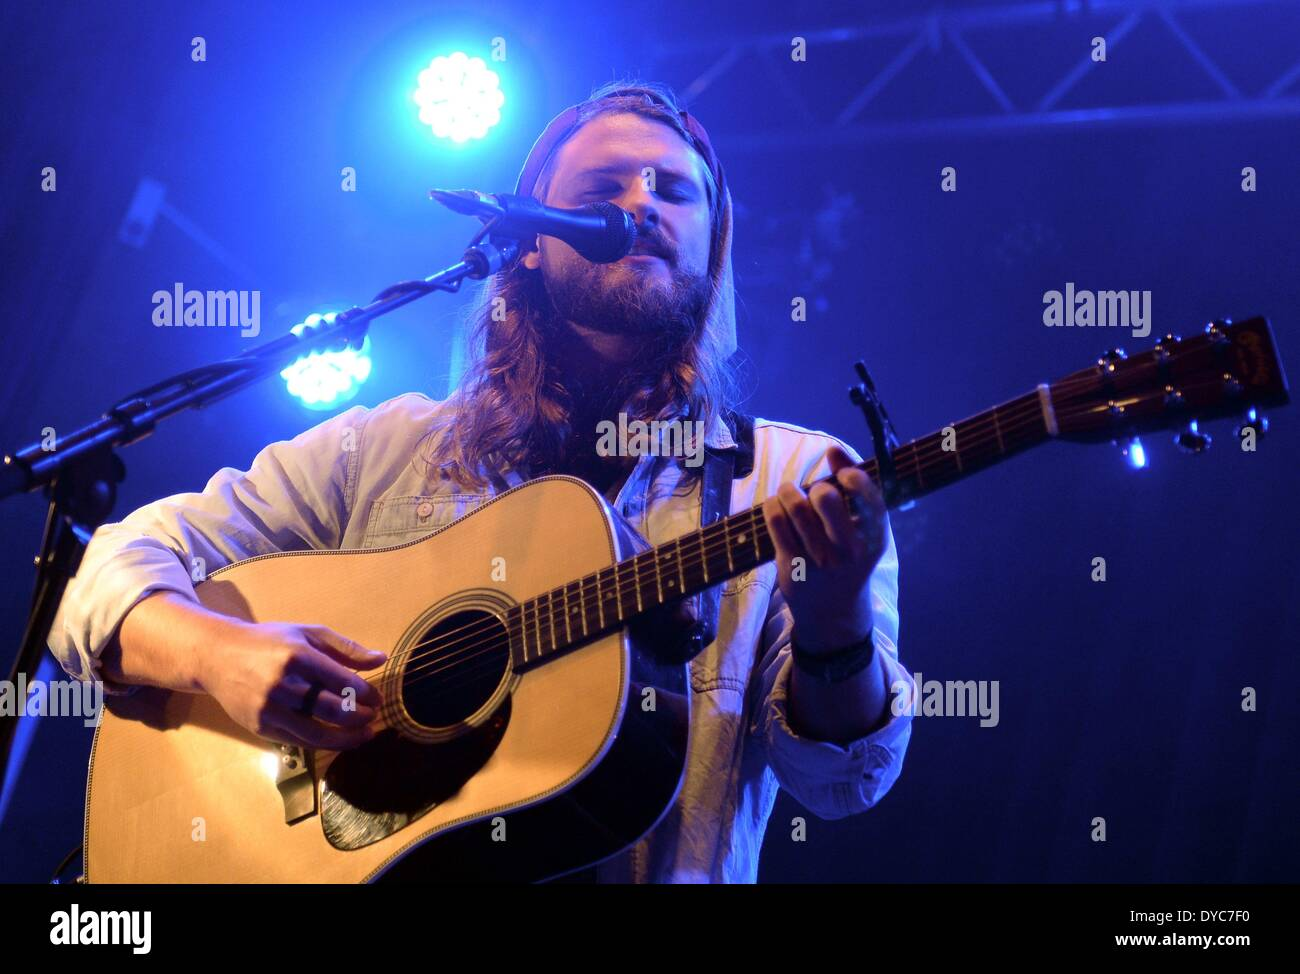 Berlin, Germany. 13th Apr, 2014. US singer Ian Hooper and Germany-based band Mighty Oaks perform in the sold-out Stock Photo